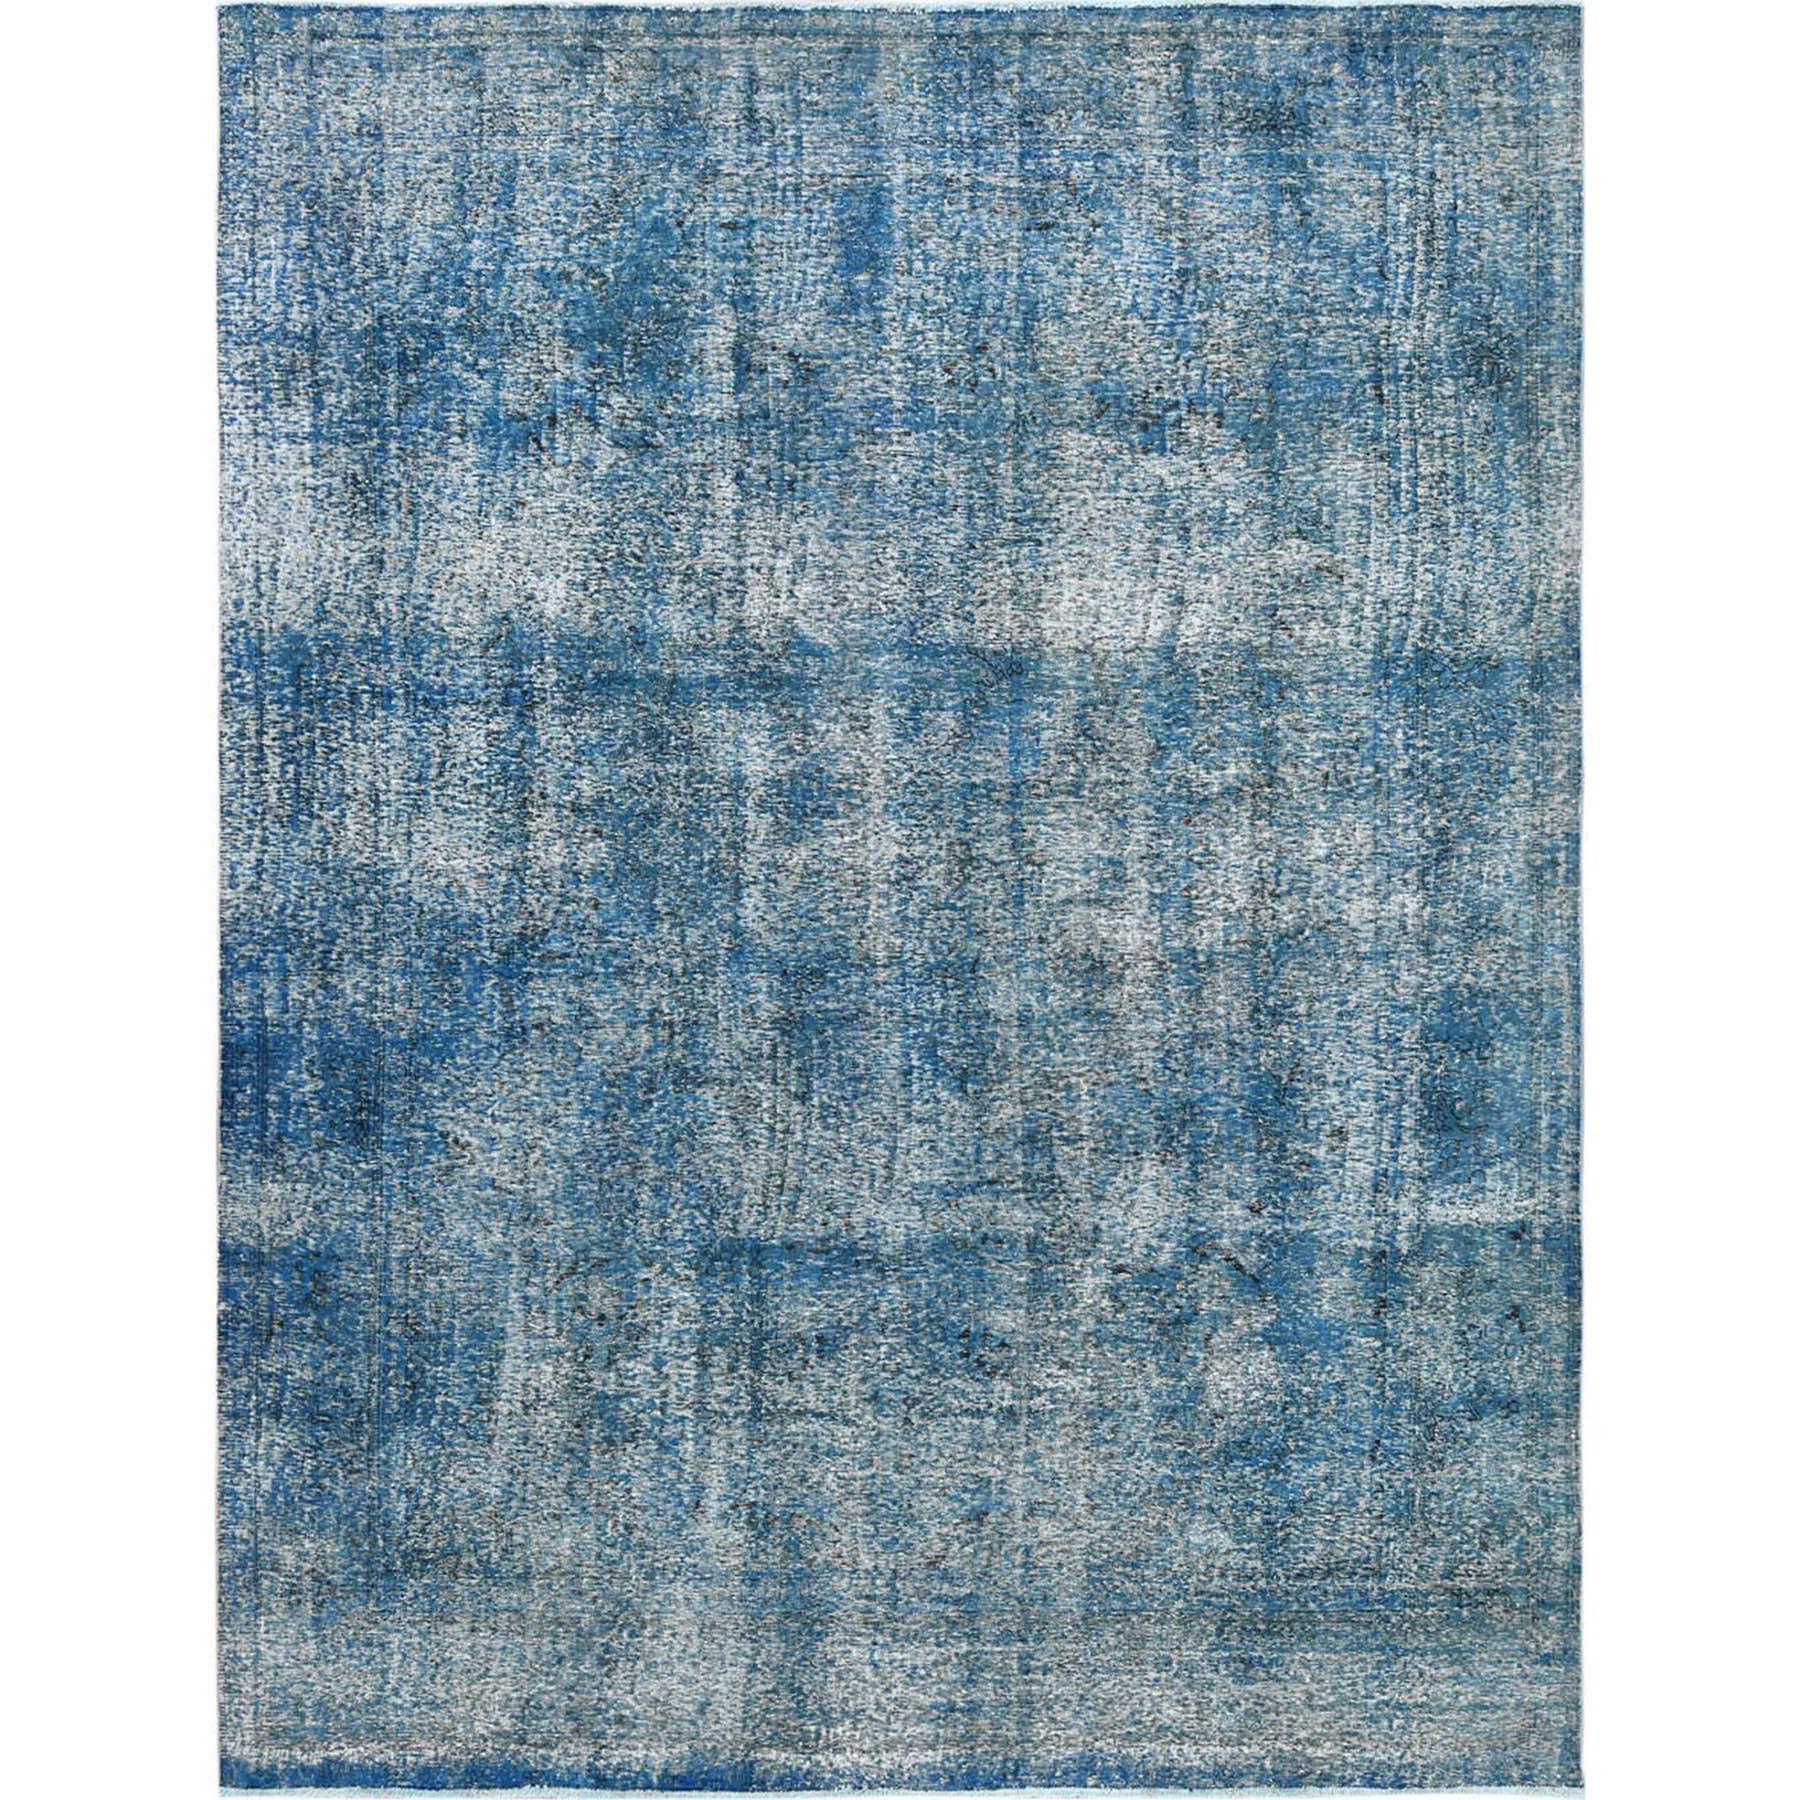 """9'9""""X12'9"""" Blue Clean Pure Wool Bohemian Worn Down Vintage Look Persian Tabriz All Over Design Hand Knotted Oriental Rug moa60cb6"""